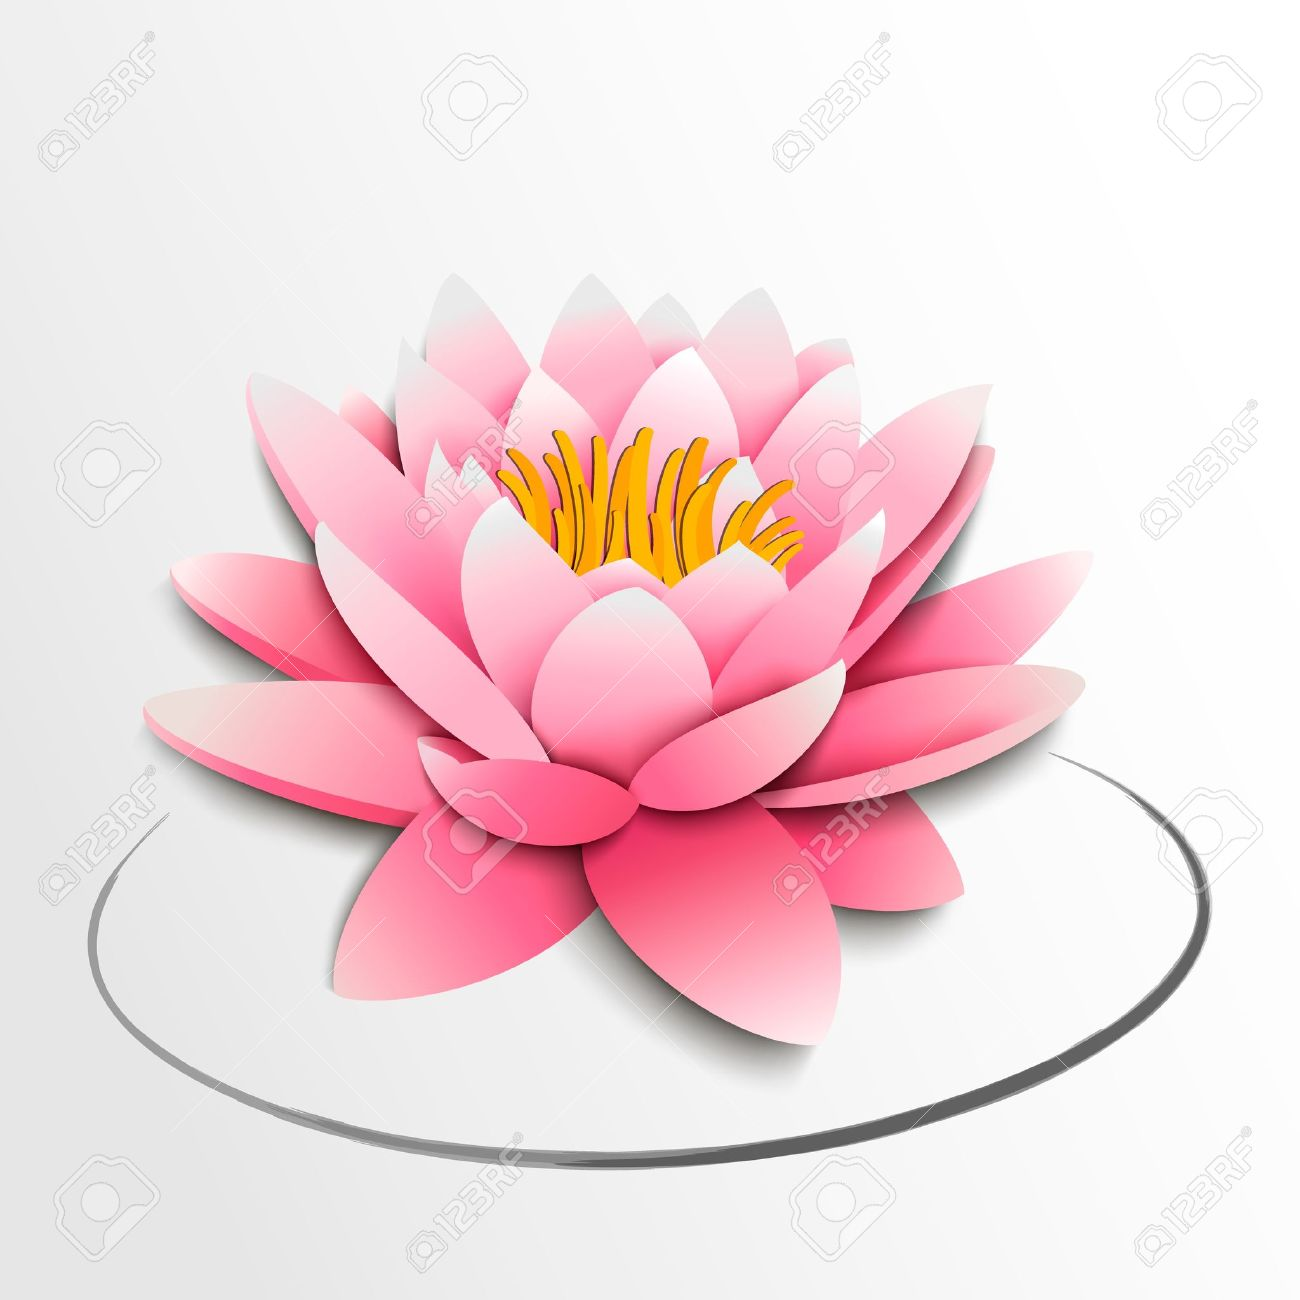 Pink Lotus Flower Paper Cutout Illustration Royalty Free Cliparts